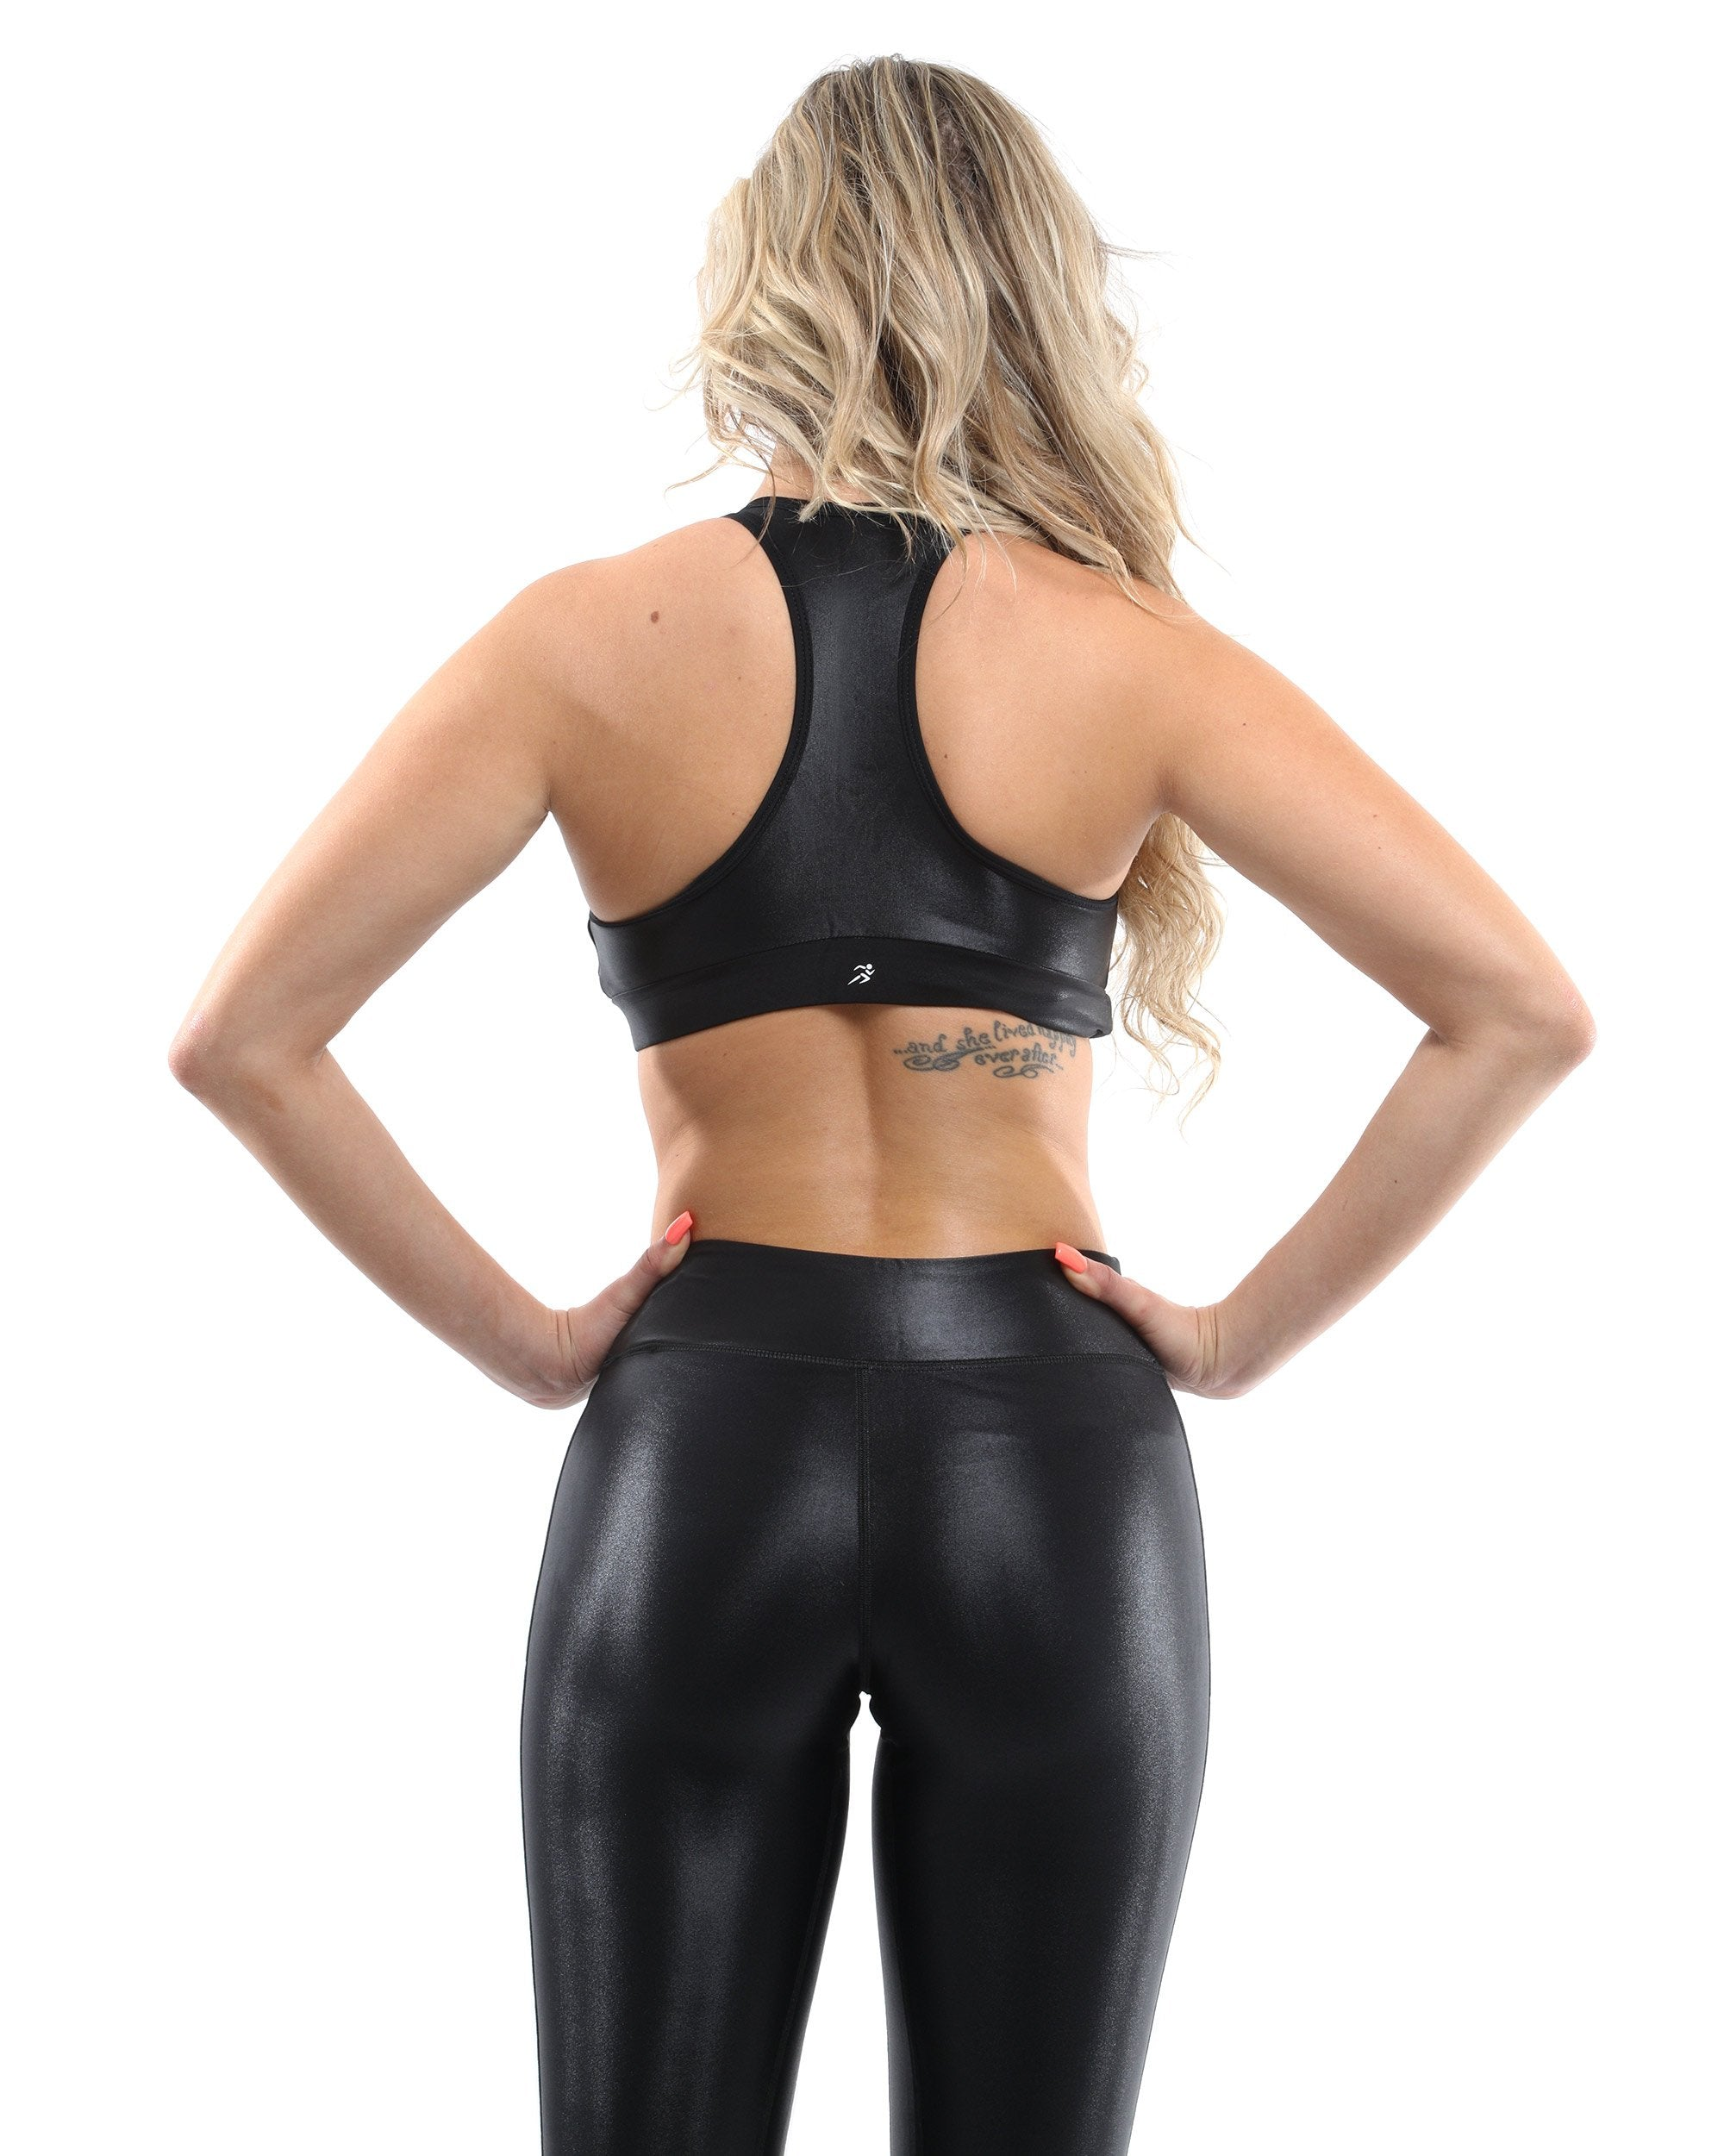 Cortina Activewear Leggings - Black [MADE IN ITALY] - Chic Athletics